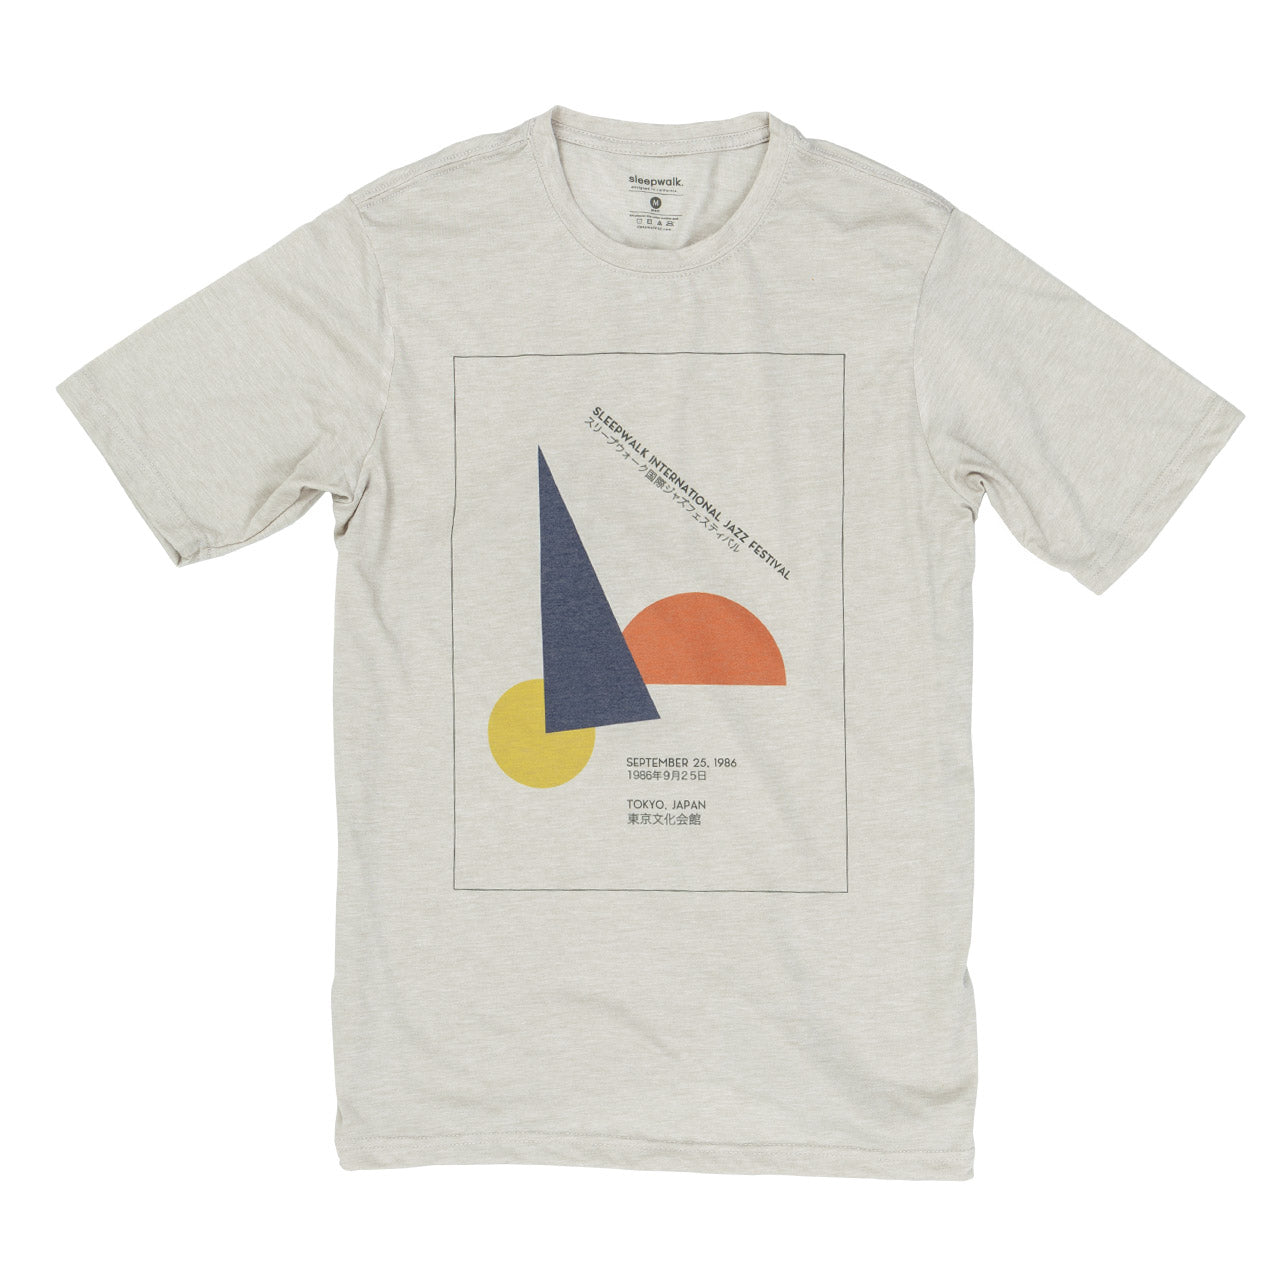 sleepwalk ltd japan jazz festival t shirt